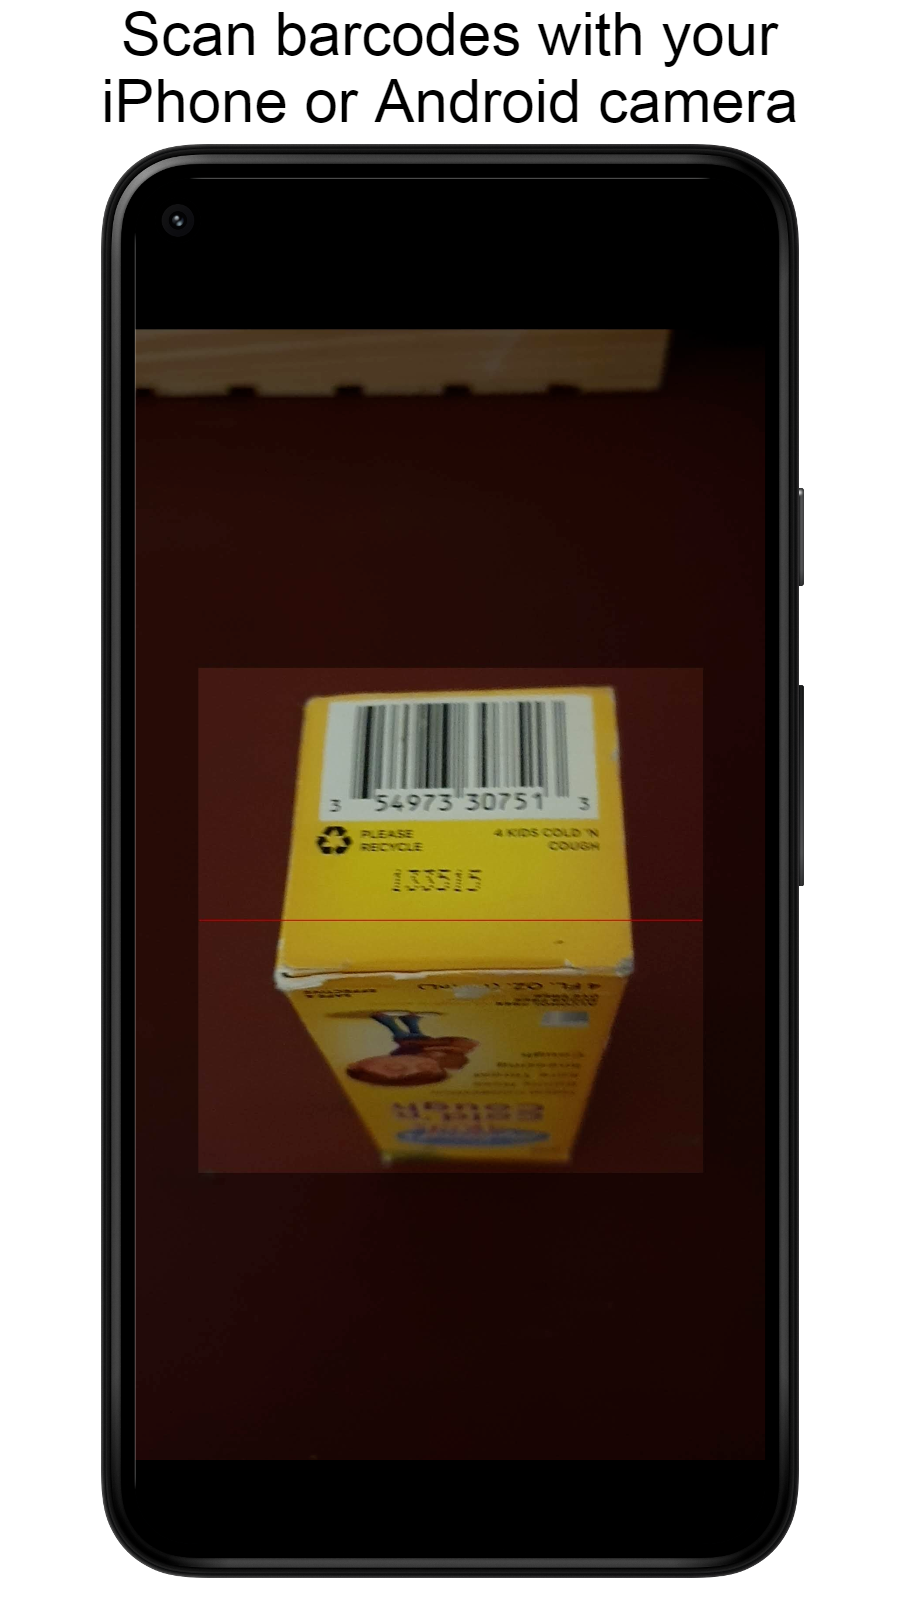 Mobile phone camera barcode scanner